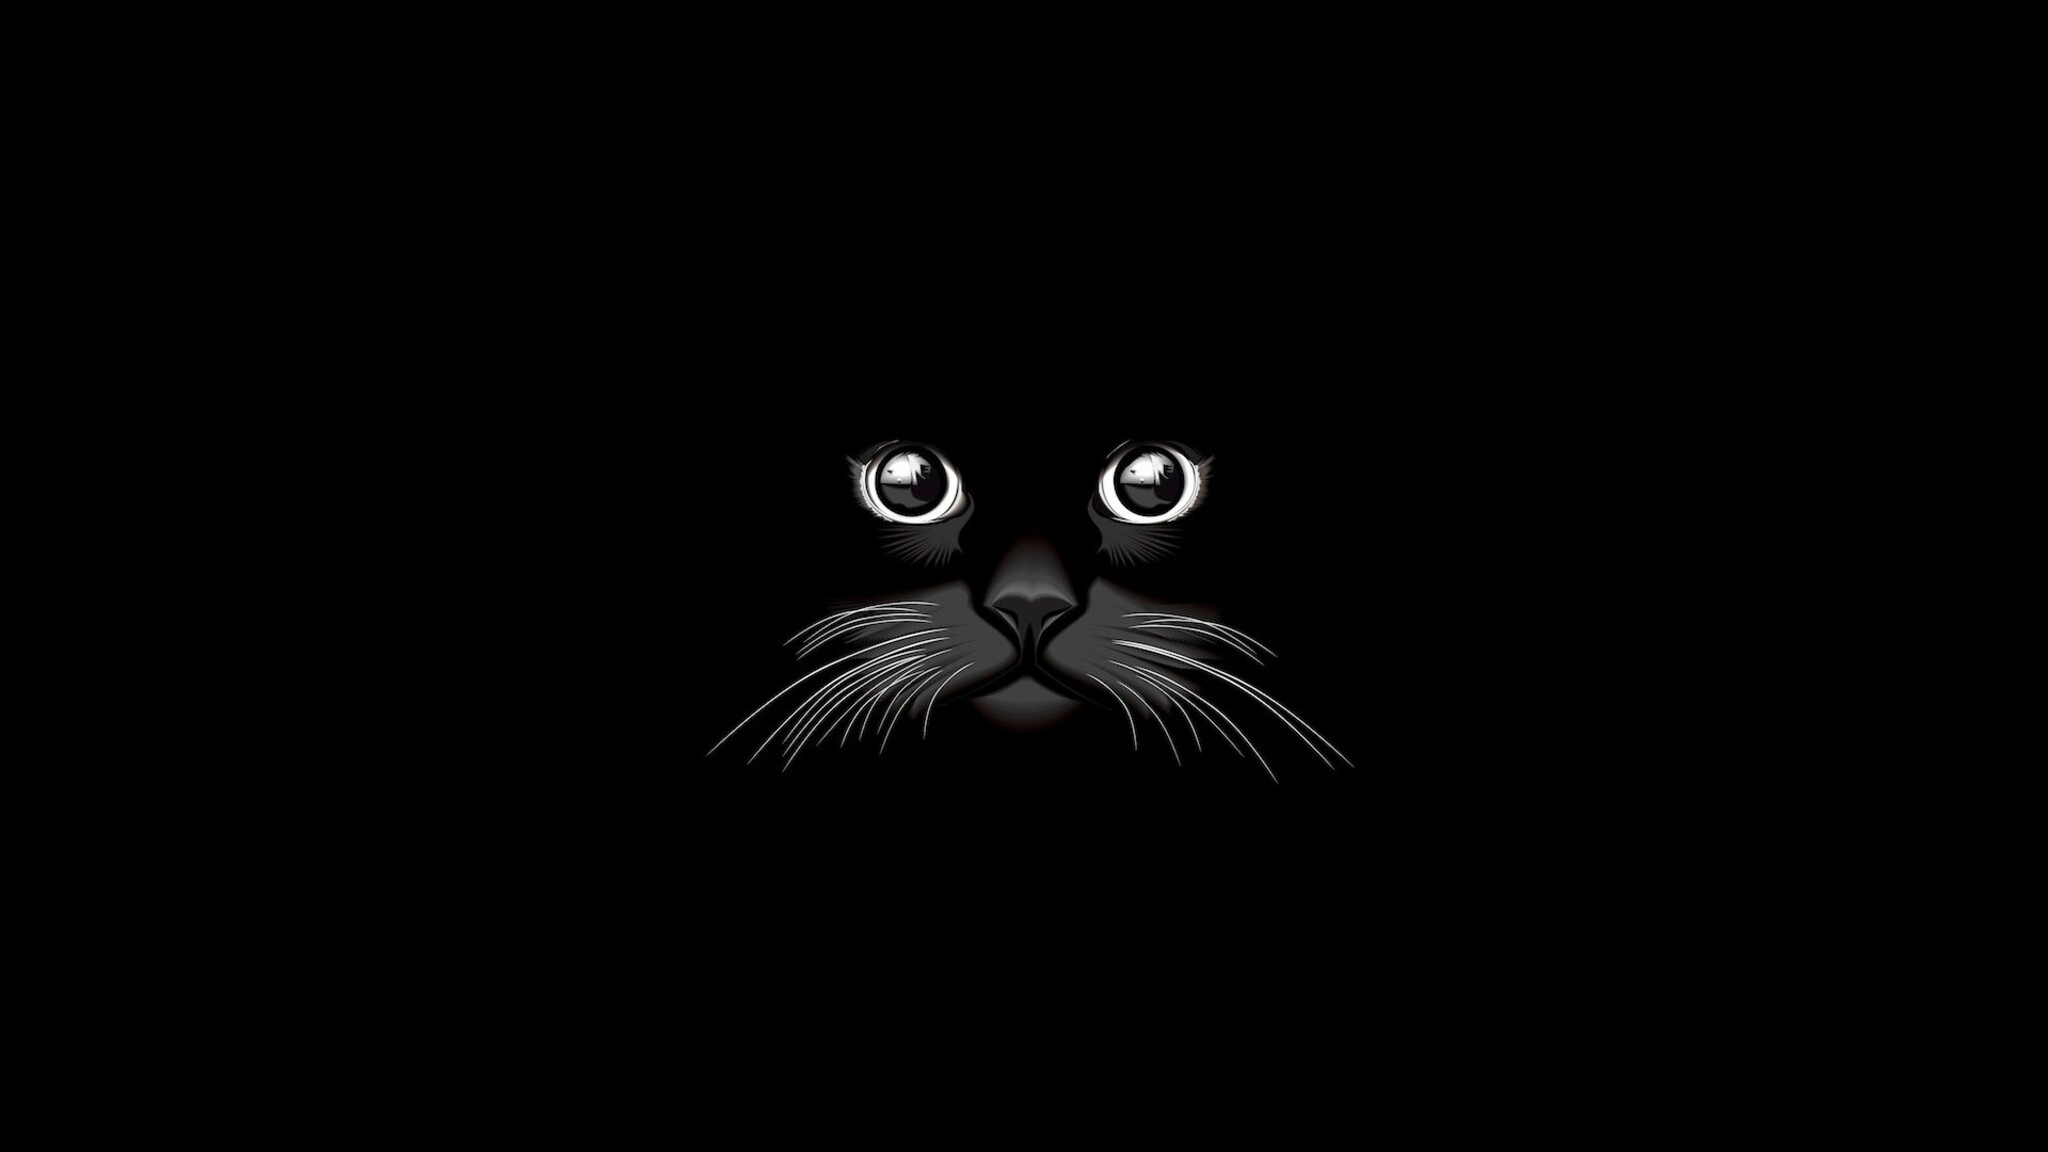 2048x1152 Cat Vector 2048x1152 Resolution HD 4k Wallpapers ...